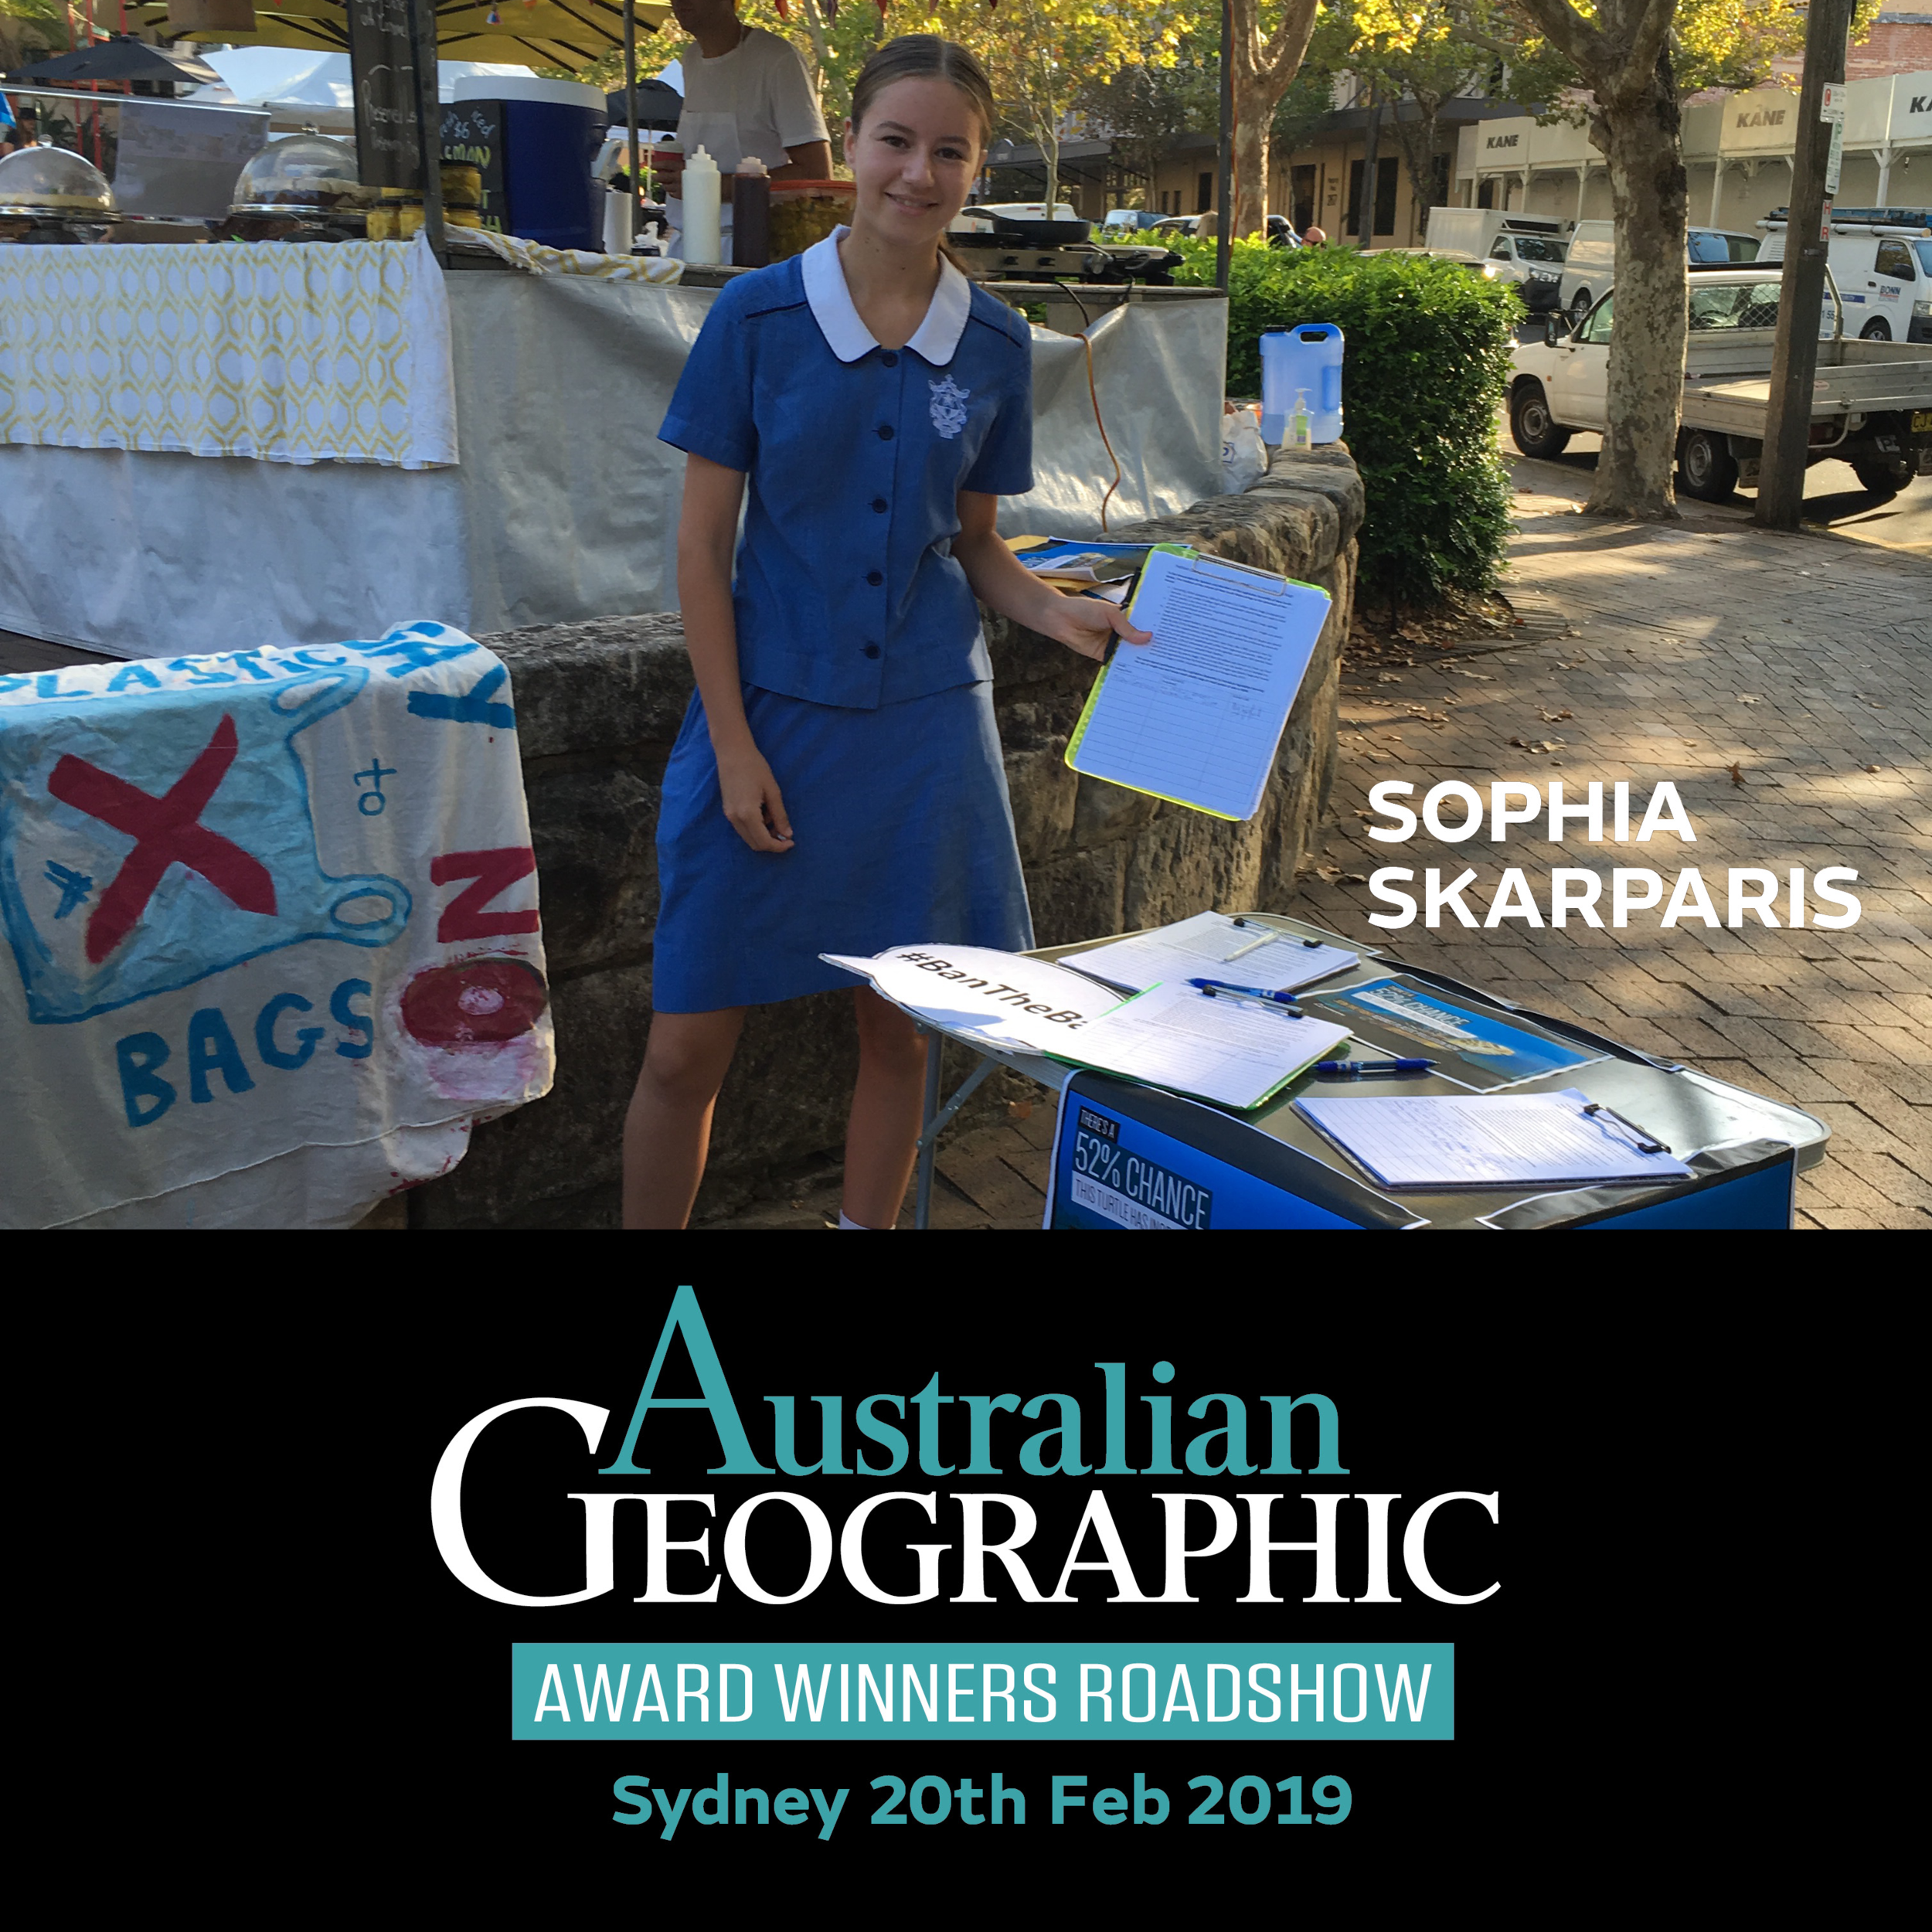 Promotion of 2019 Australian Geographic Award Winners roadshow